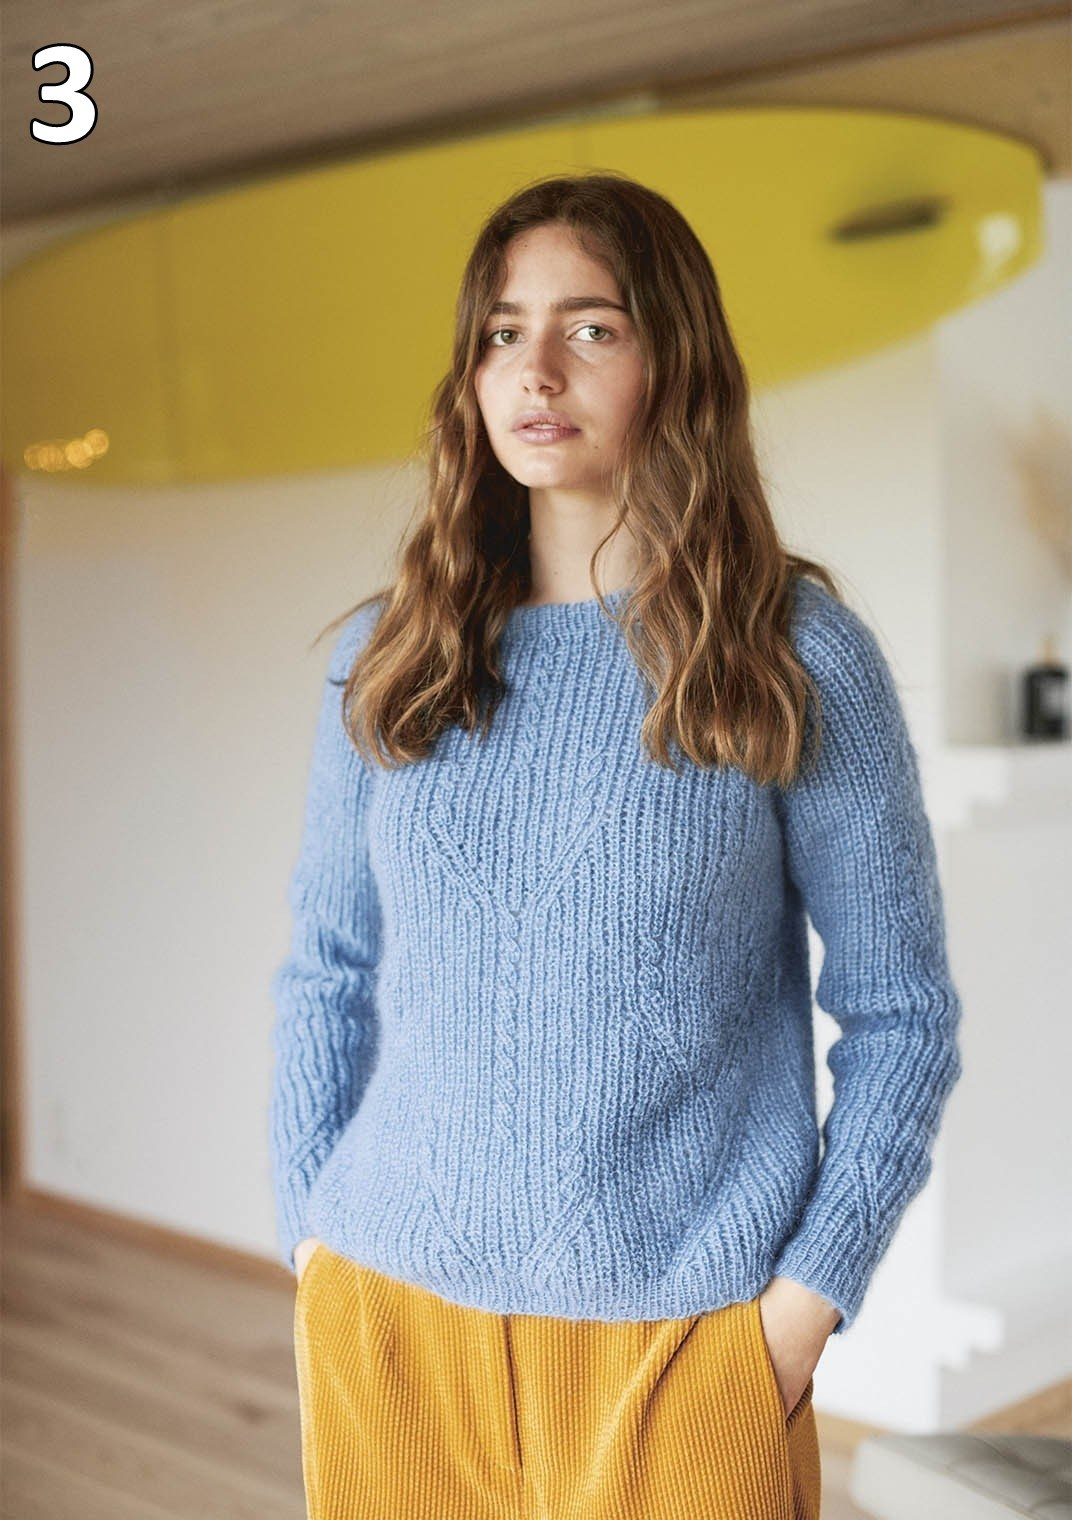 Sandnes strikkehæfte 1912 model 3 Tulipangenser (sweater)